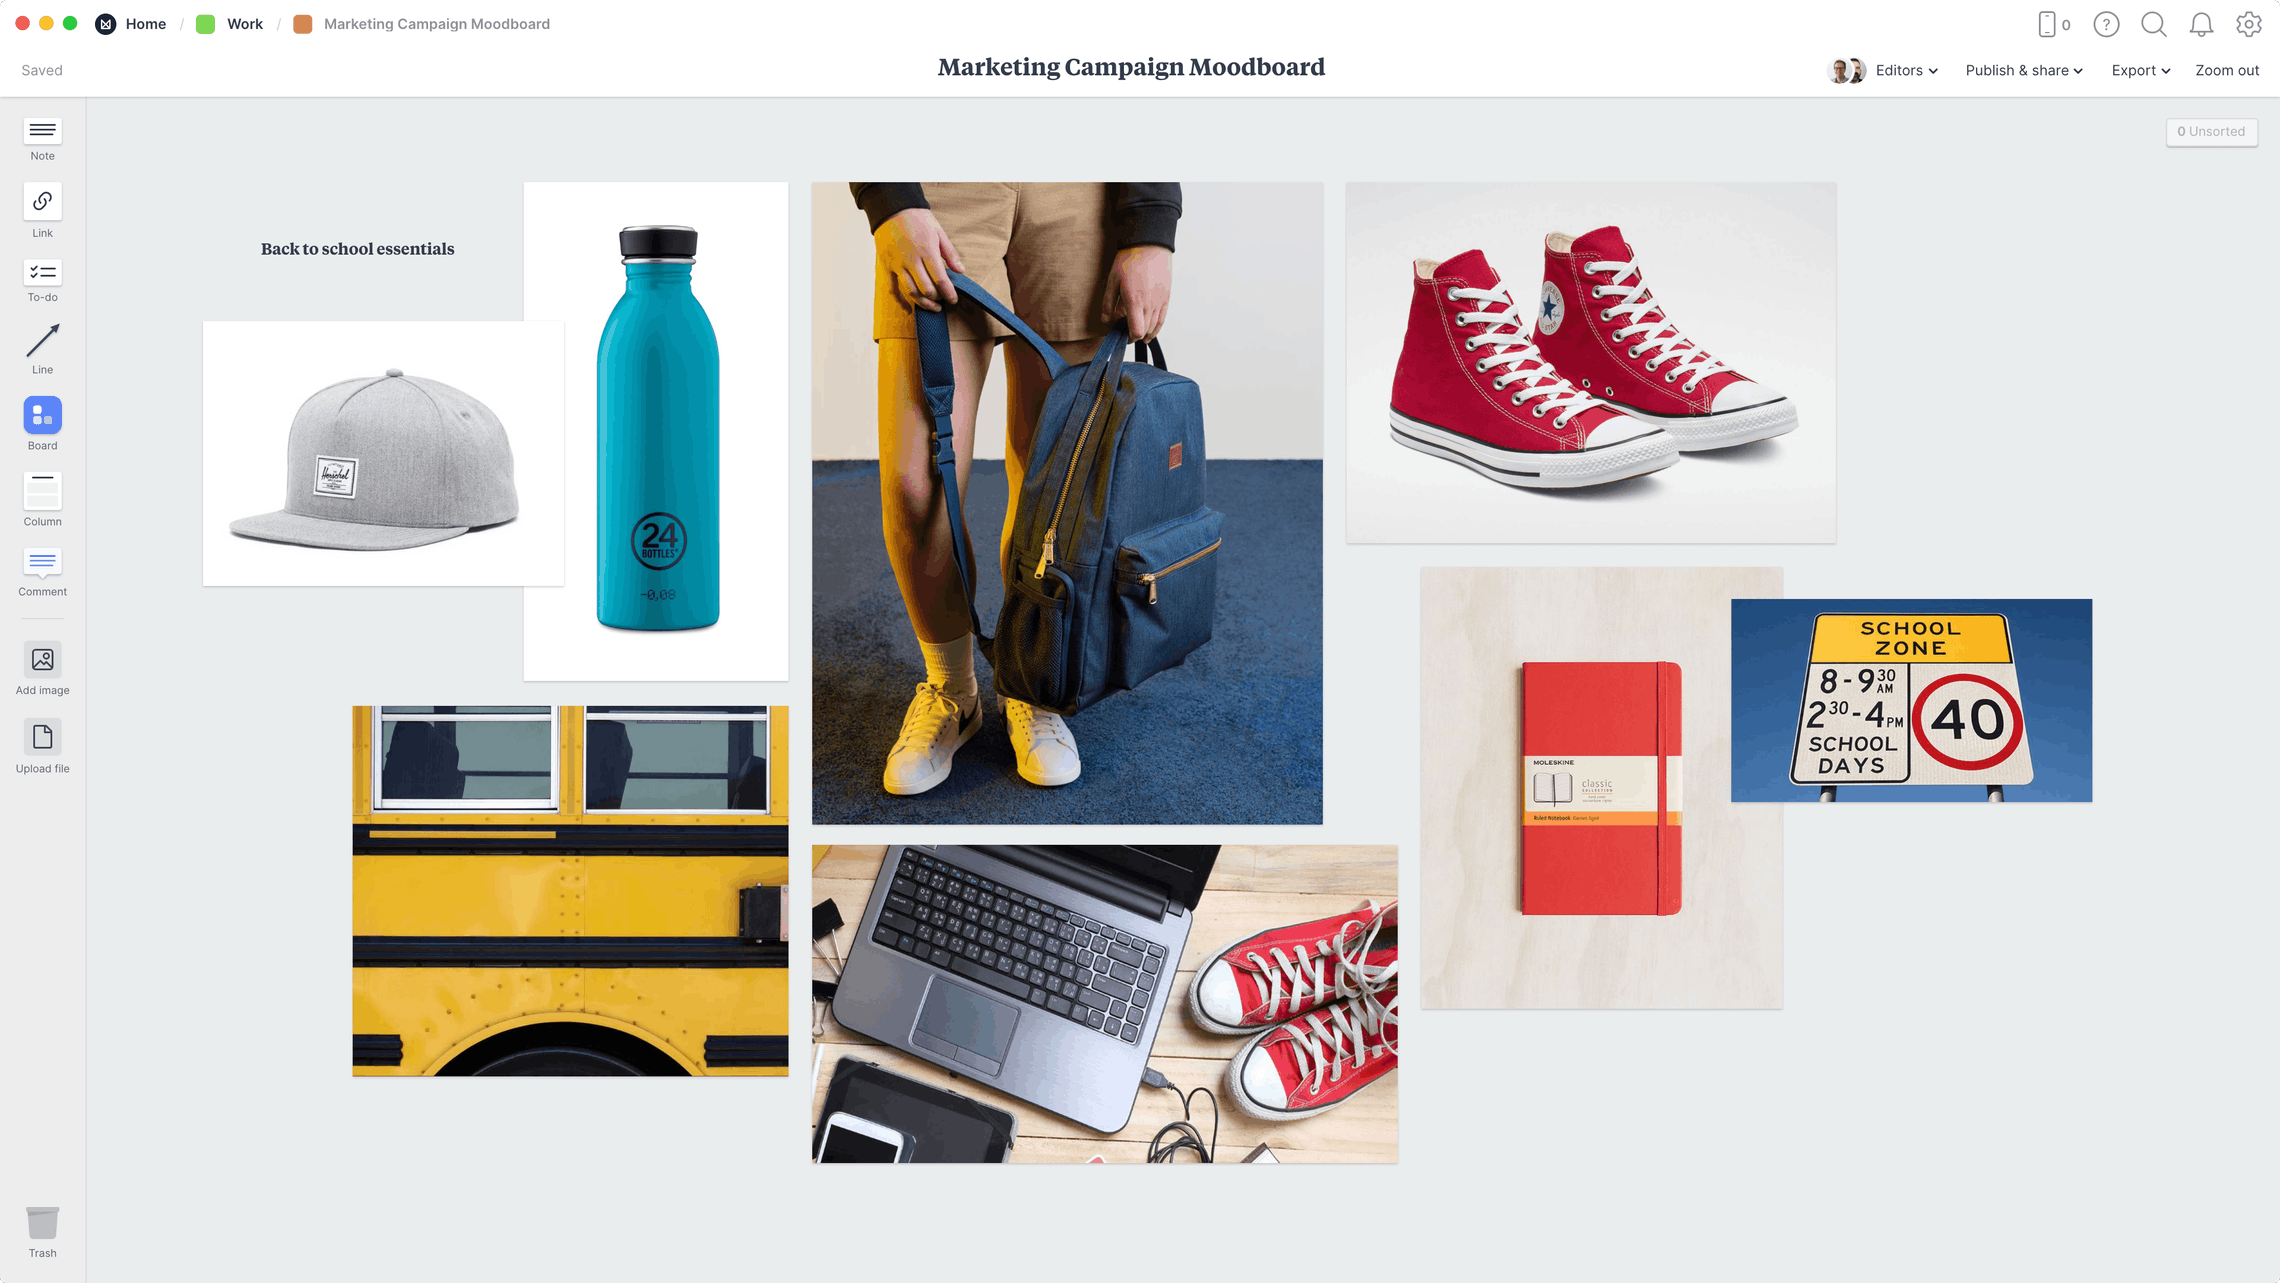 Marketing Campaign Moodboard Template, within the Milanote app